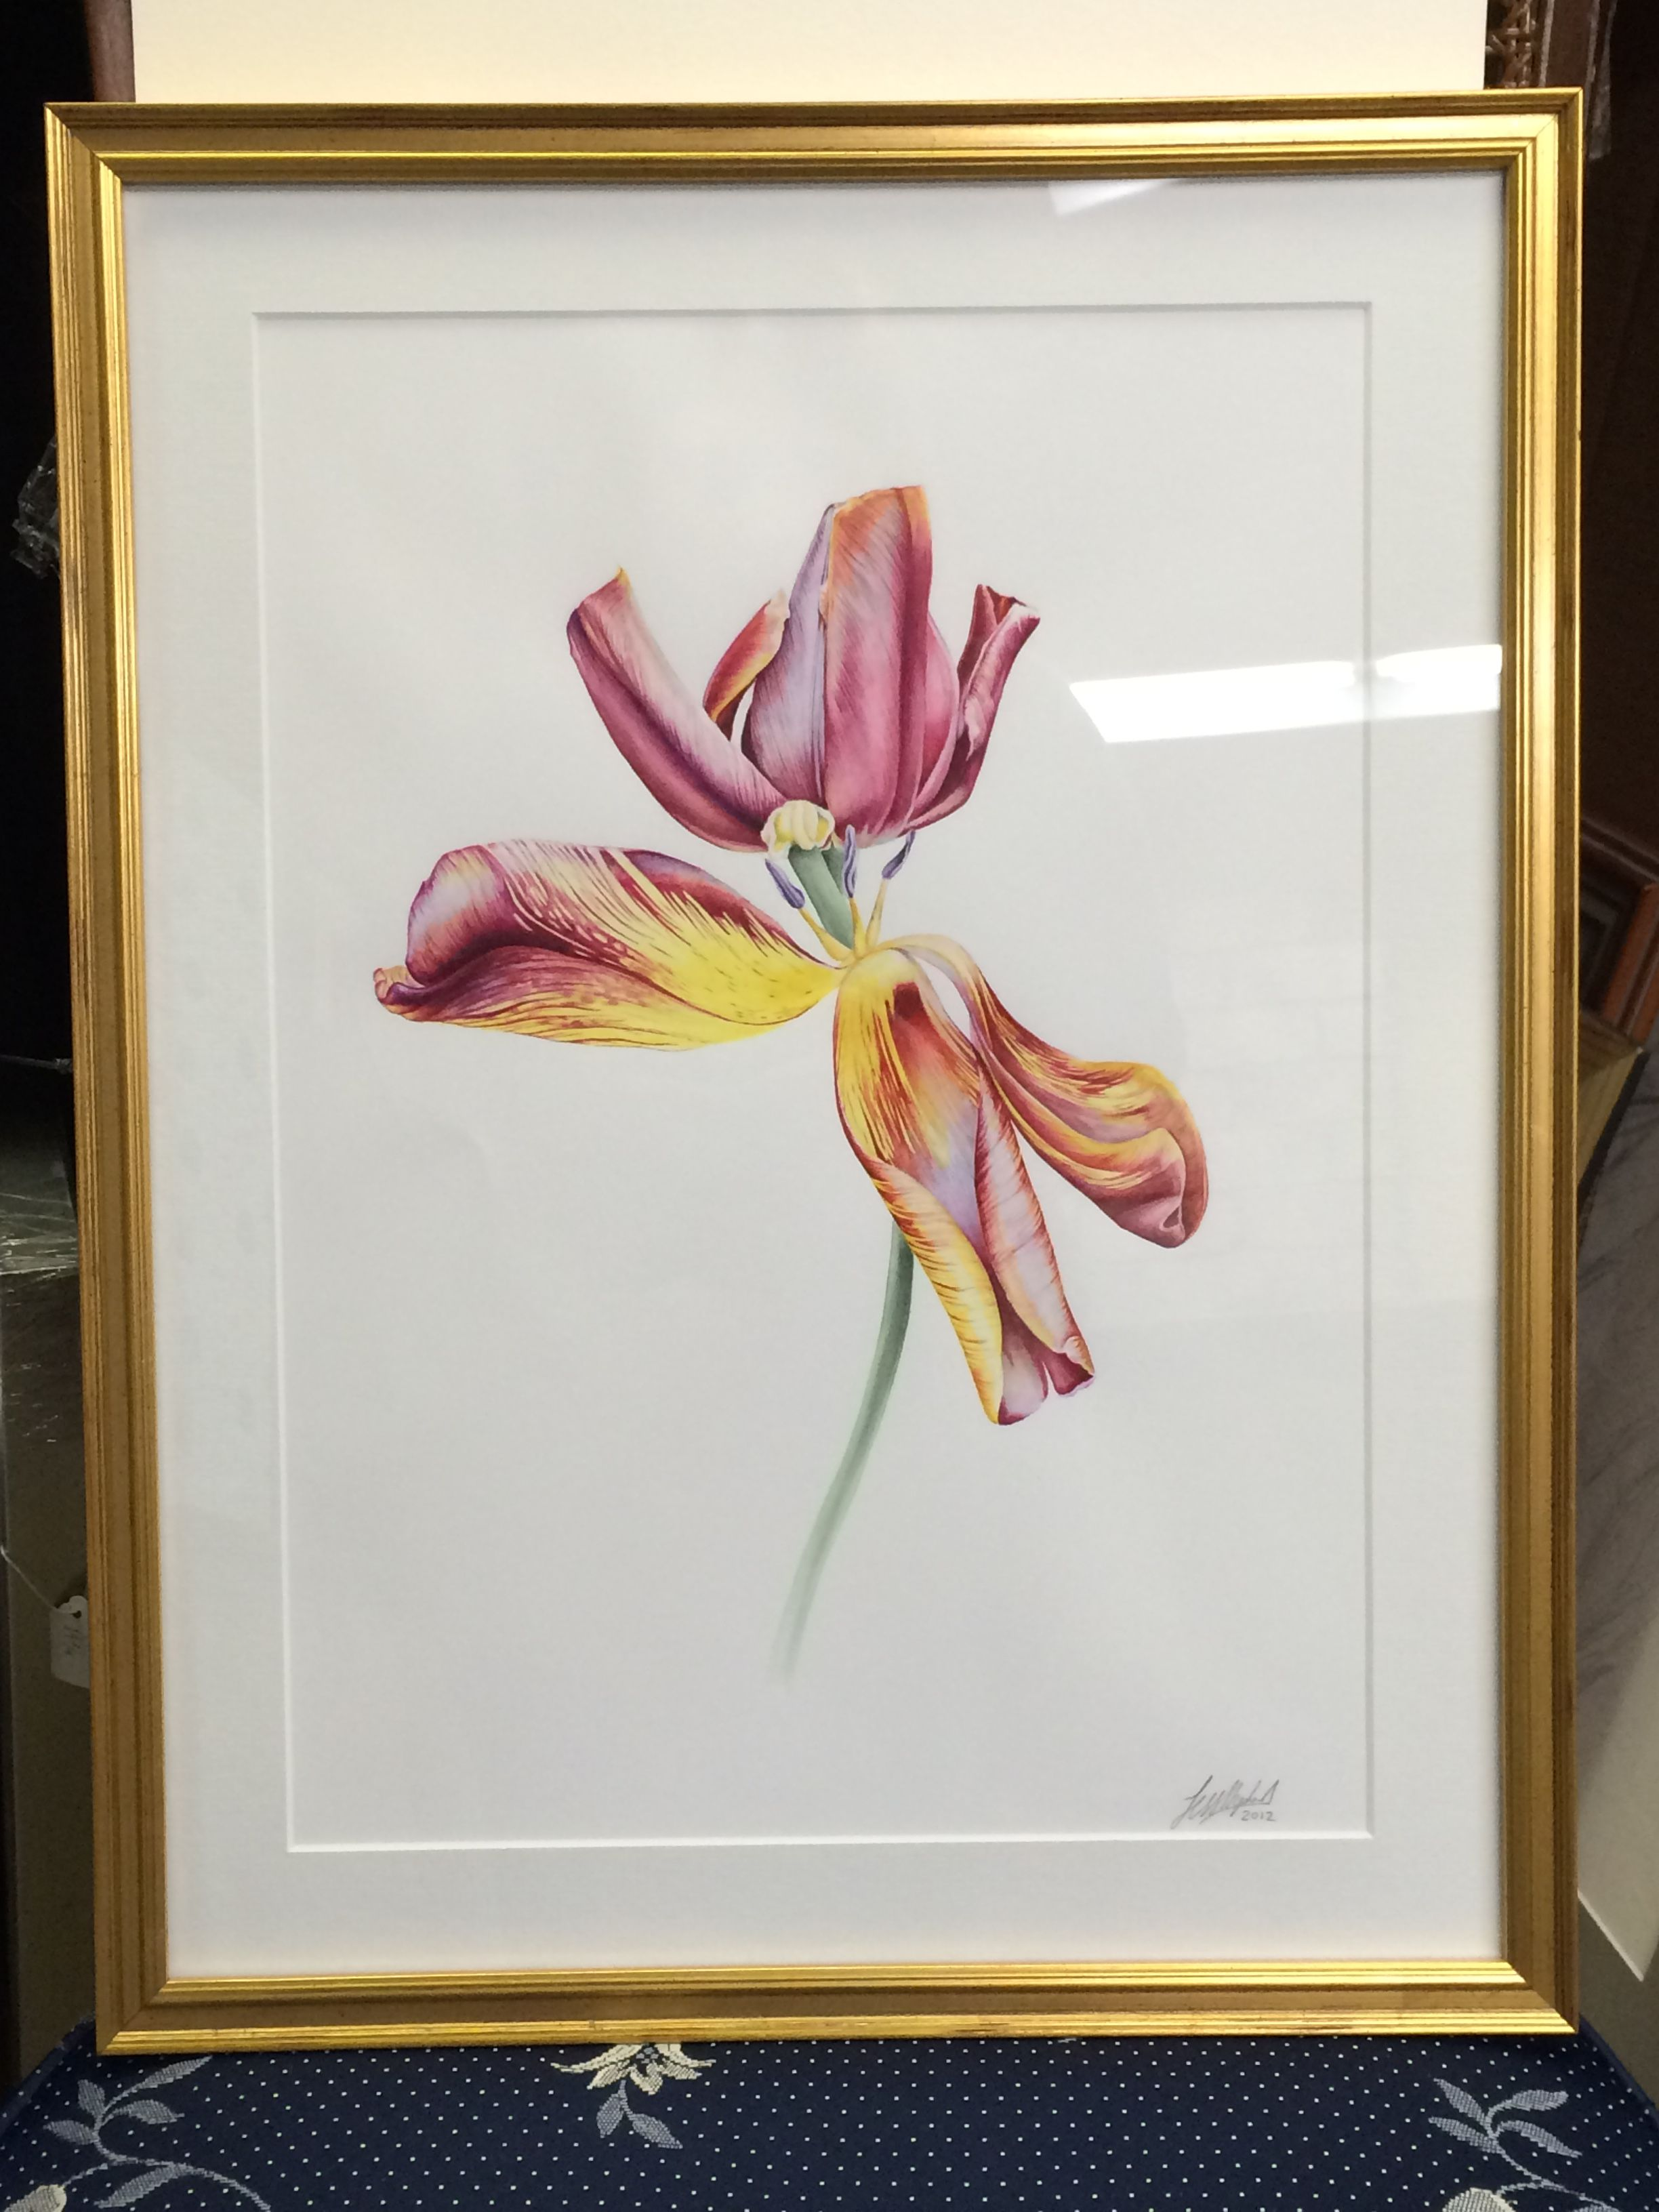 Watercolor Painting Framed In Gold Leaf Wooden Frame By Art En